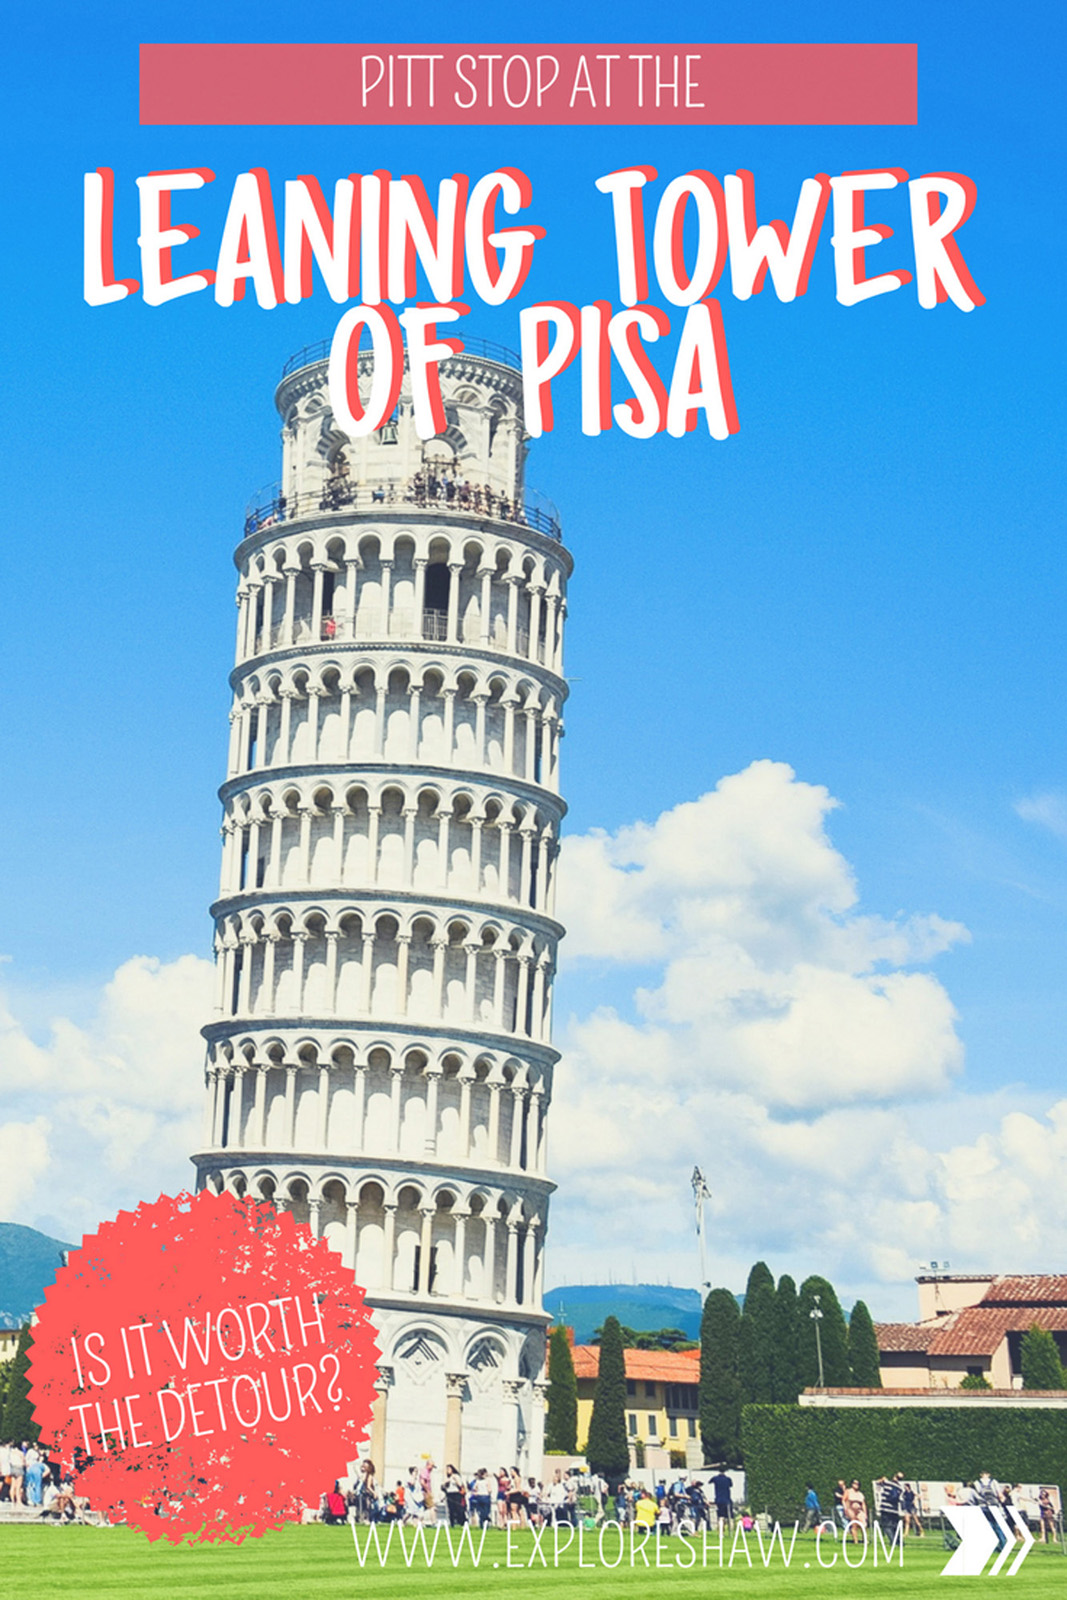 STOPPING AT THE LEANING TOWER OF PISA